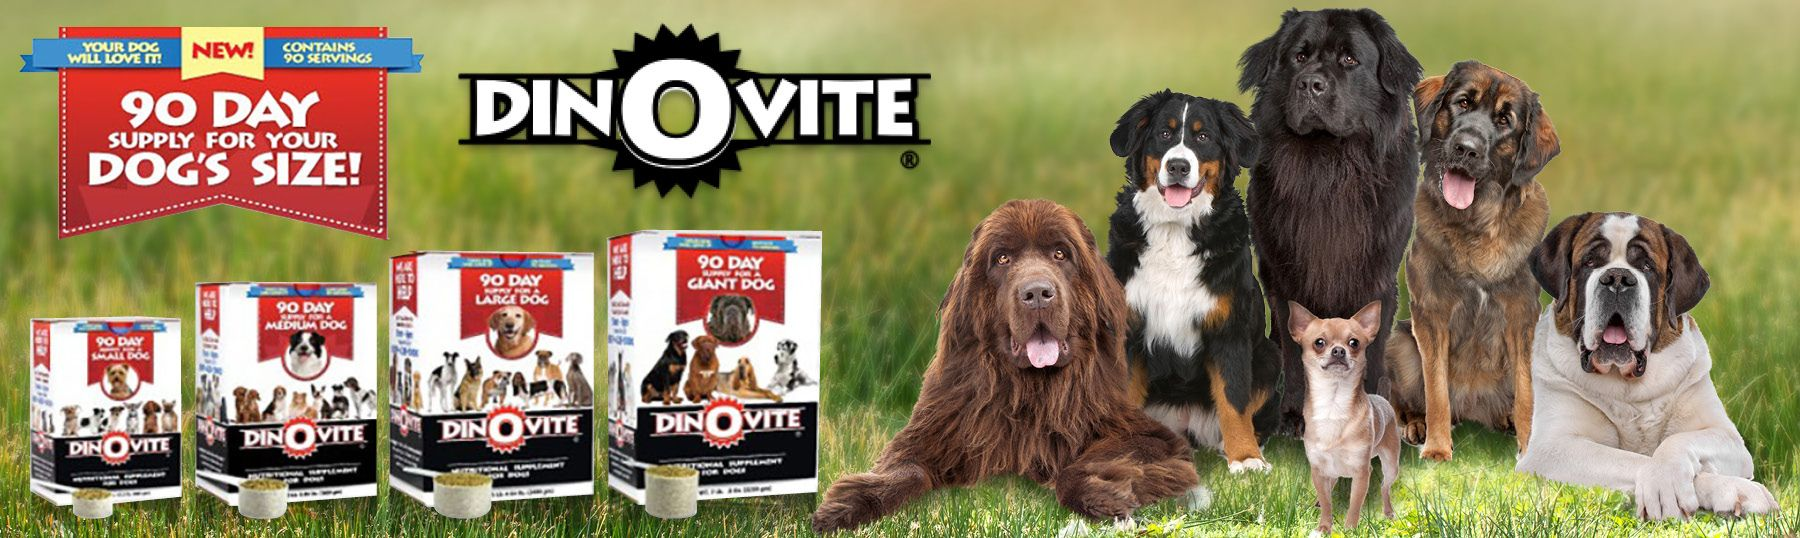 Pin By Dinovite On Natural Pet Products Dogs Natural Pet Cat